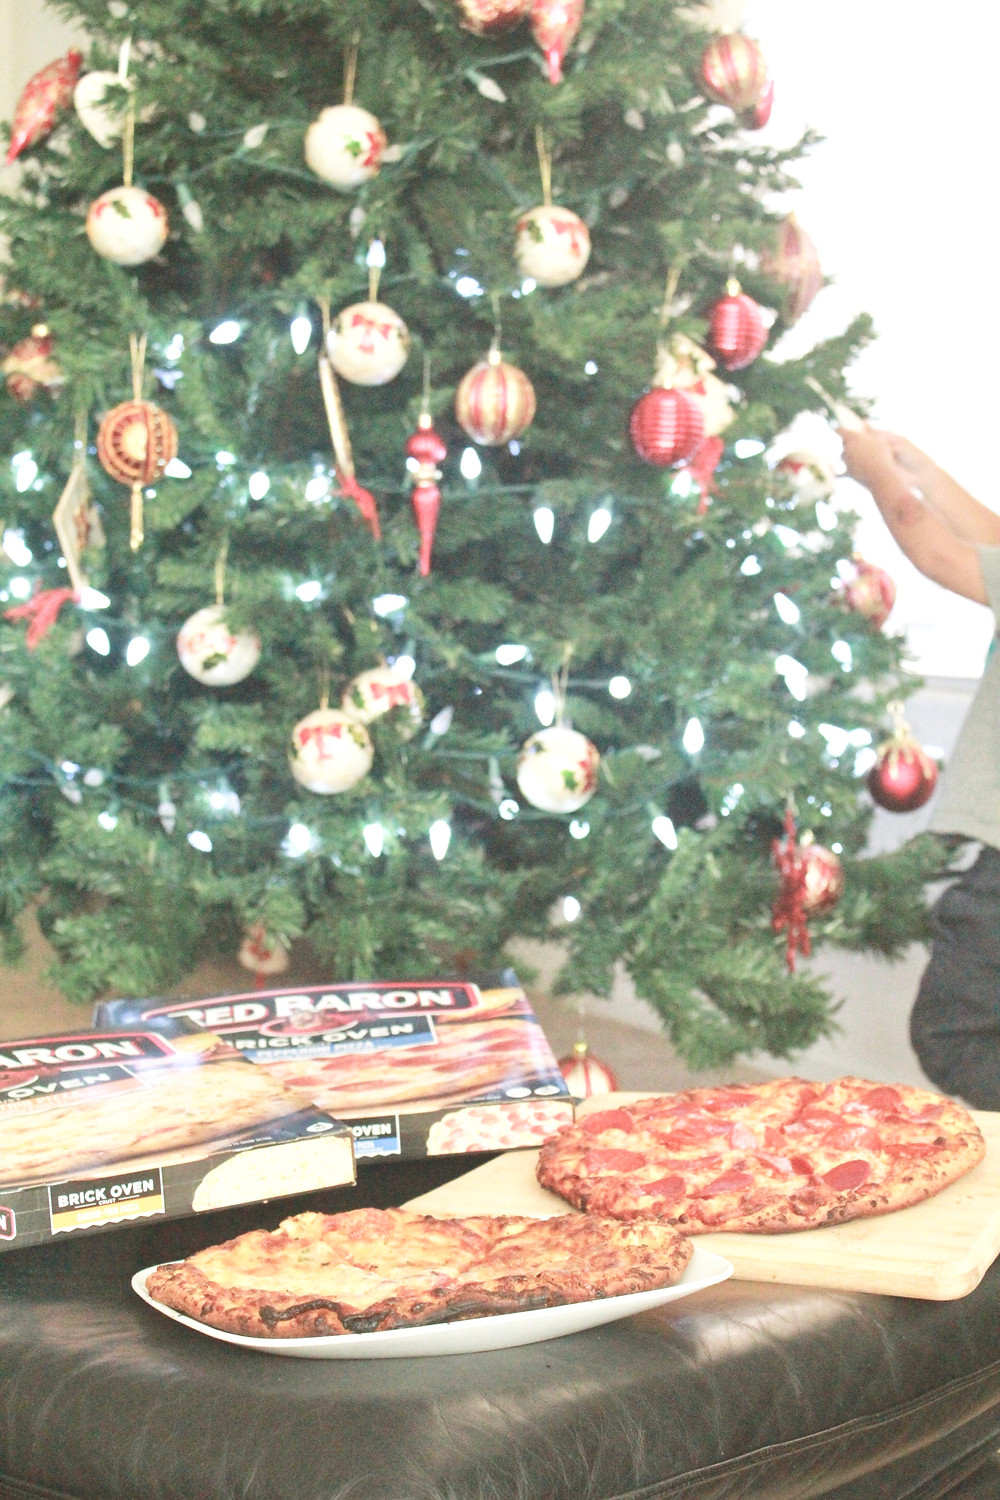 calm the holiday chaos - 5 tips for your family this holiday season // sunnyinjune.com with Red Baron Pizza